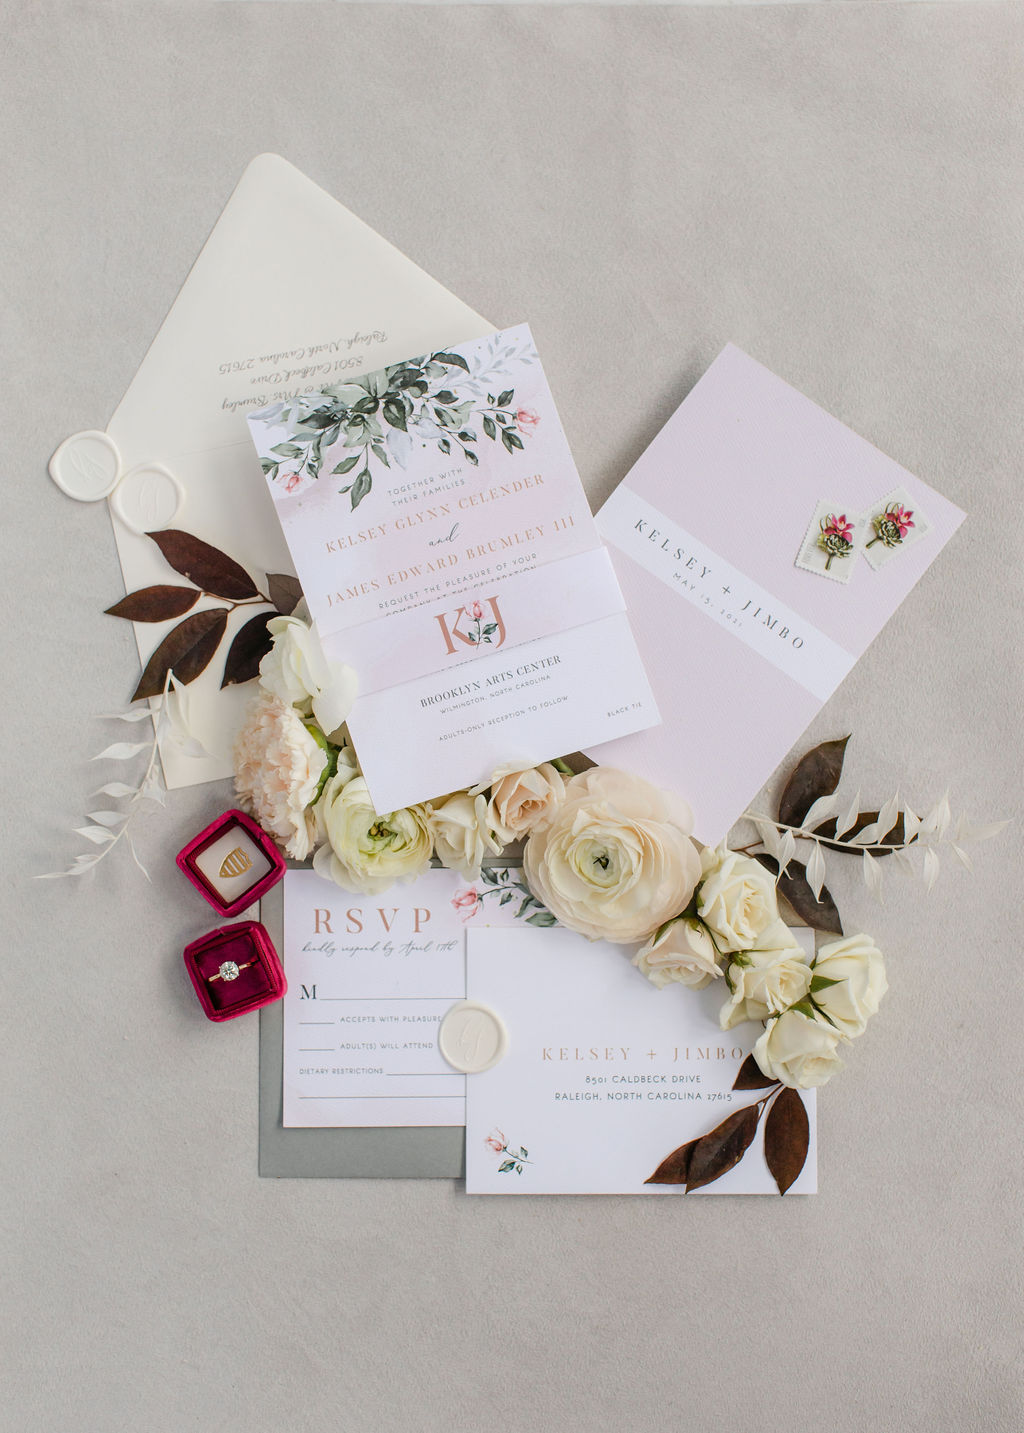 Invitation suite styling with pinks, greens and white florals